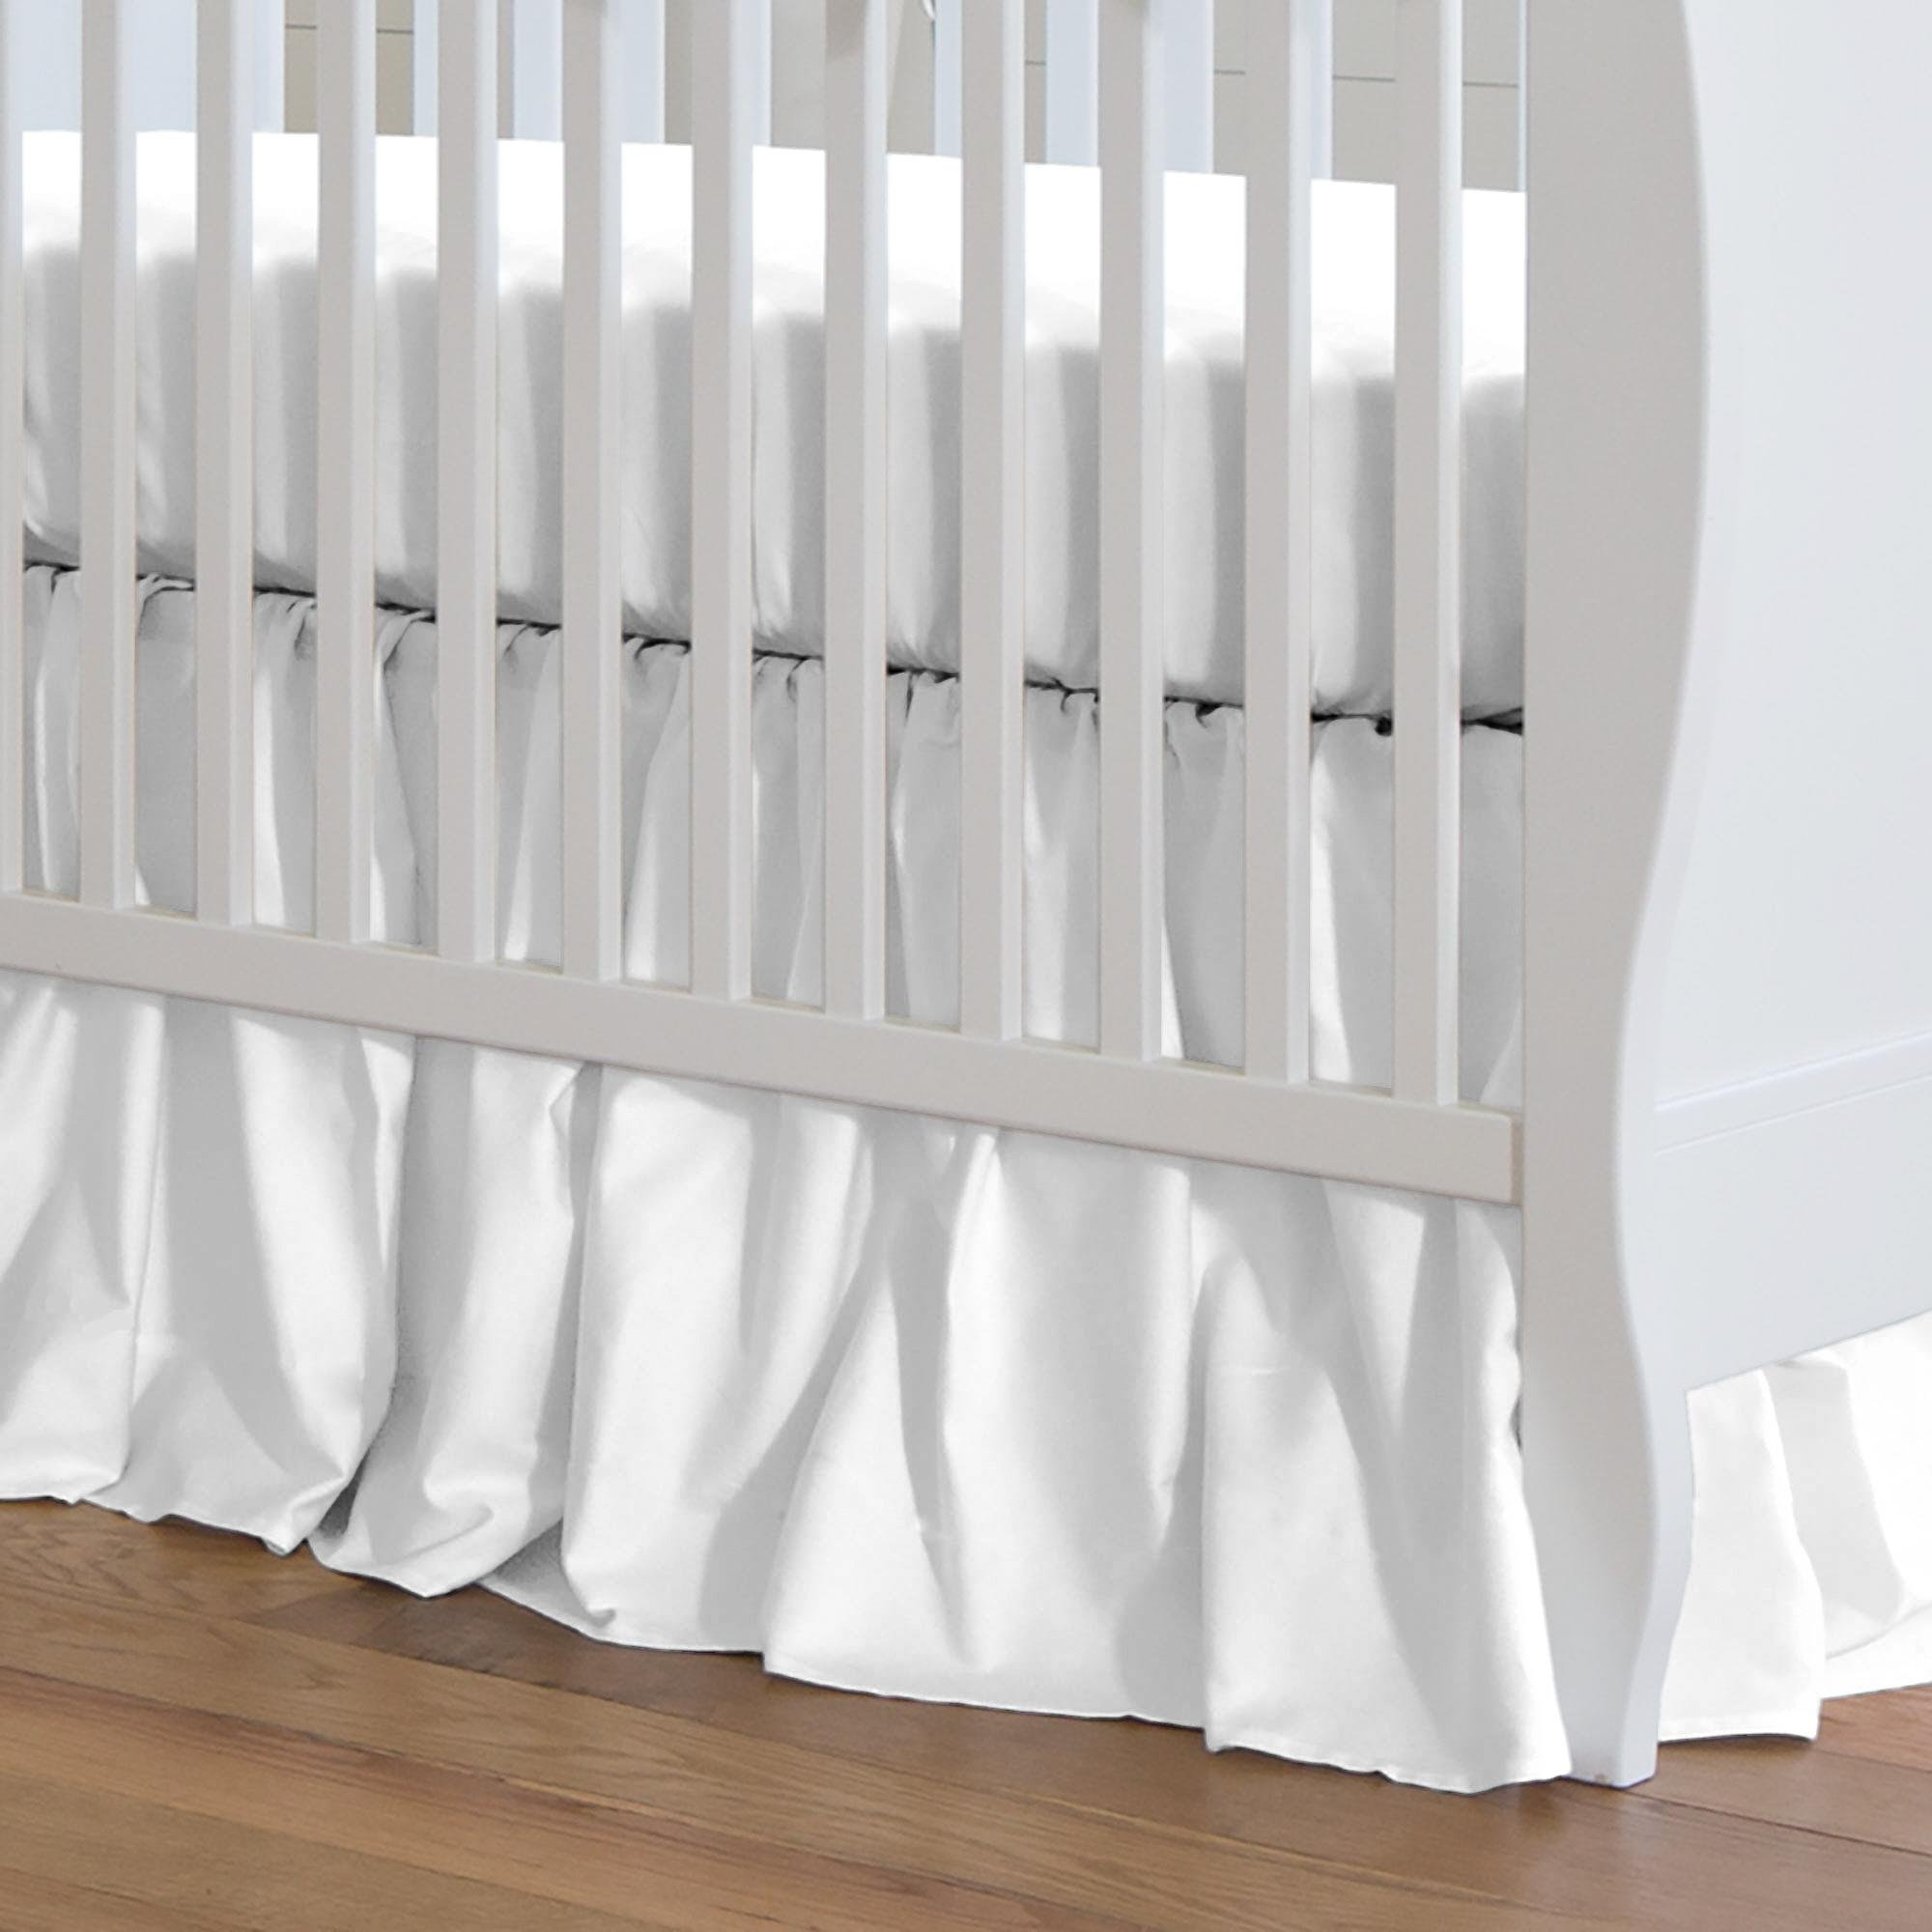 Carousel Designs Solid White Crib Skirt Gathered 20-Inch Length by Carousel Designs